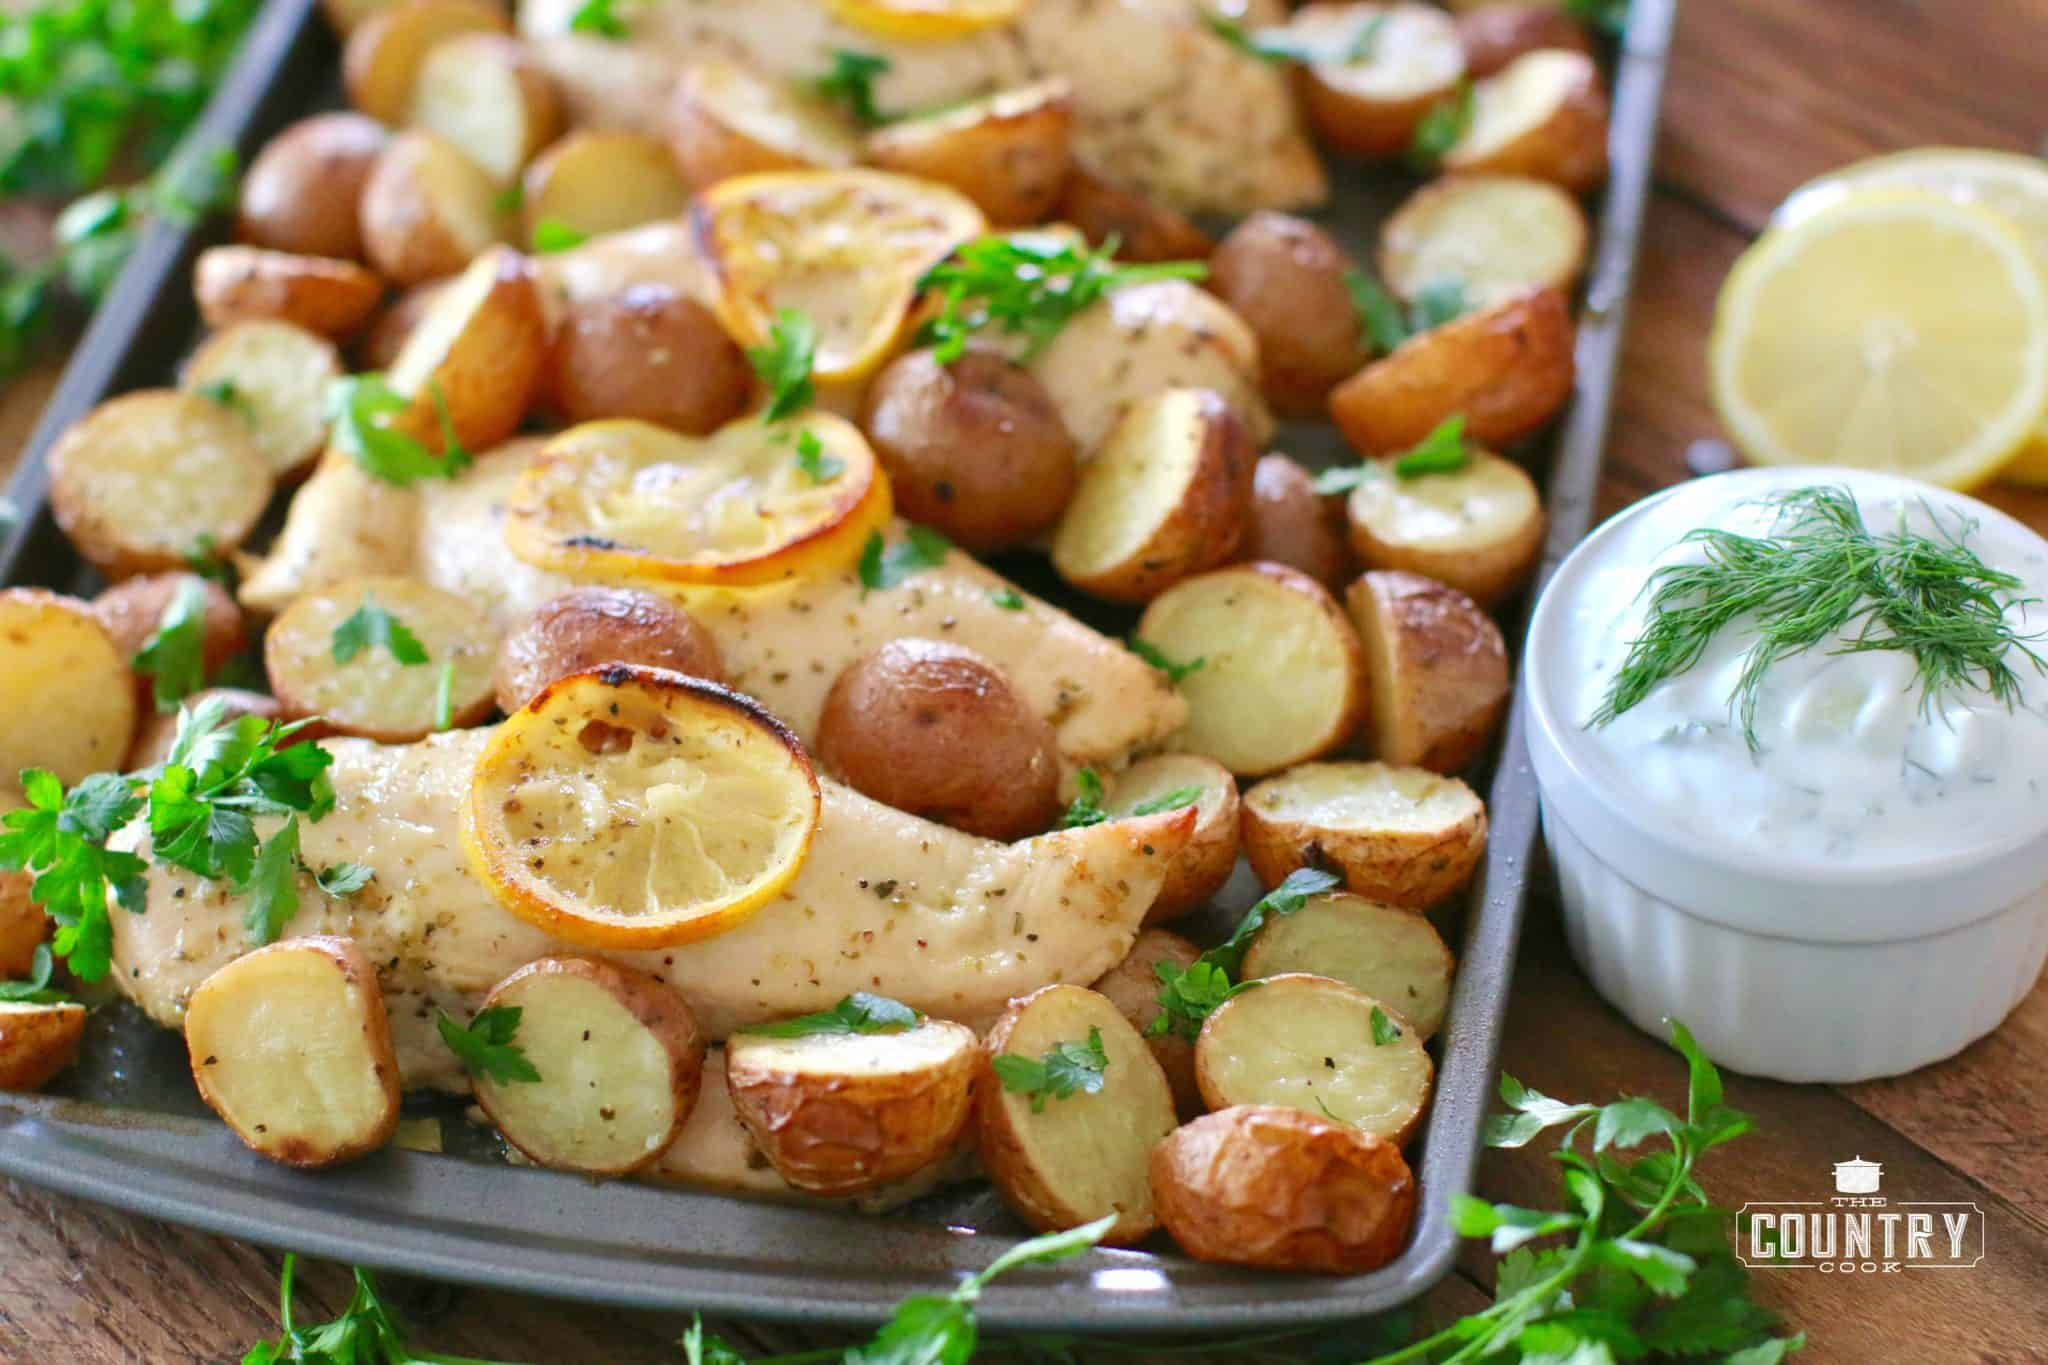 fully cooked chicken and potatoes on baking sheet and topped with fresh parsley.